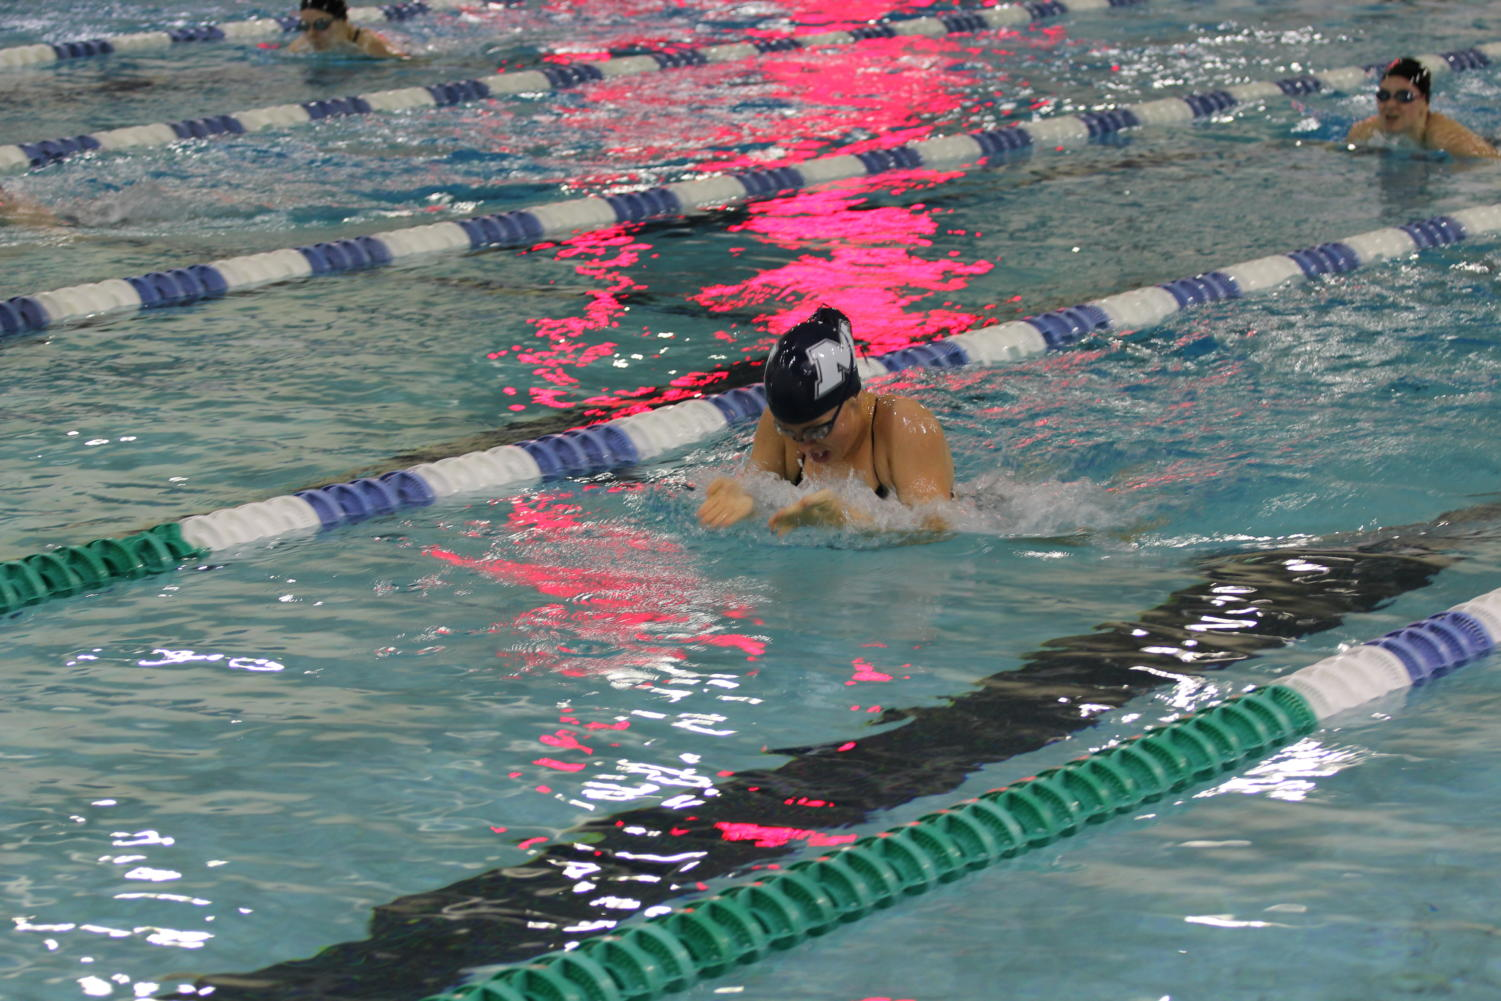 Abigail+Nebot%2C+senior%2C+swims+a+100-meter+breast+in+her+last+swim+meet+of+the+year.+Girls+swim+and+dive+will+compete+on+Feb.+14+and+Feb.+15+at+the+St.+Peters+Rec-Plex.+MHS+will+battle+for+a+championship+title+against+about+40+other+teams.+%0A